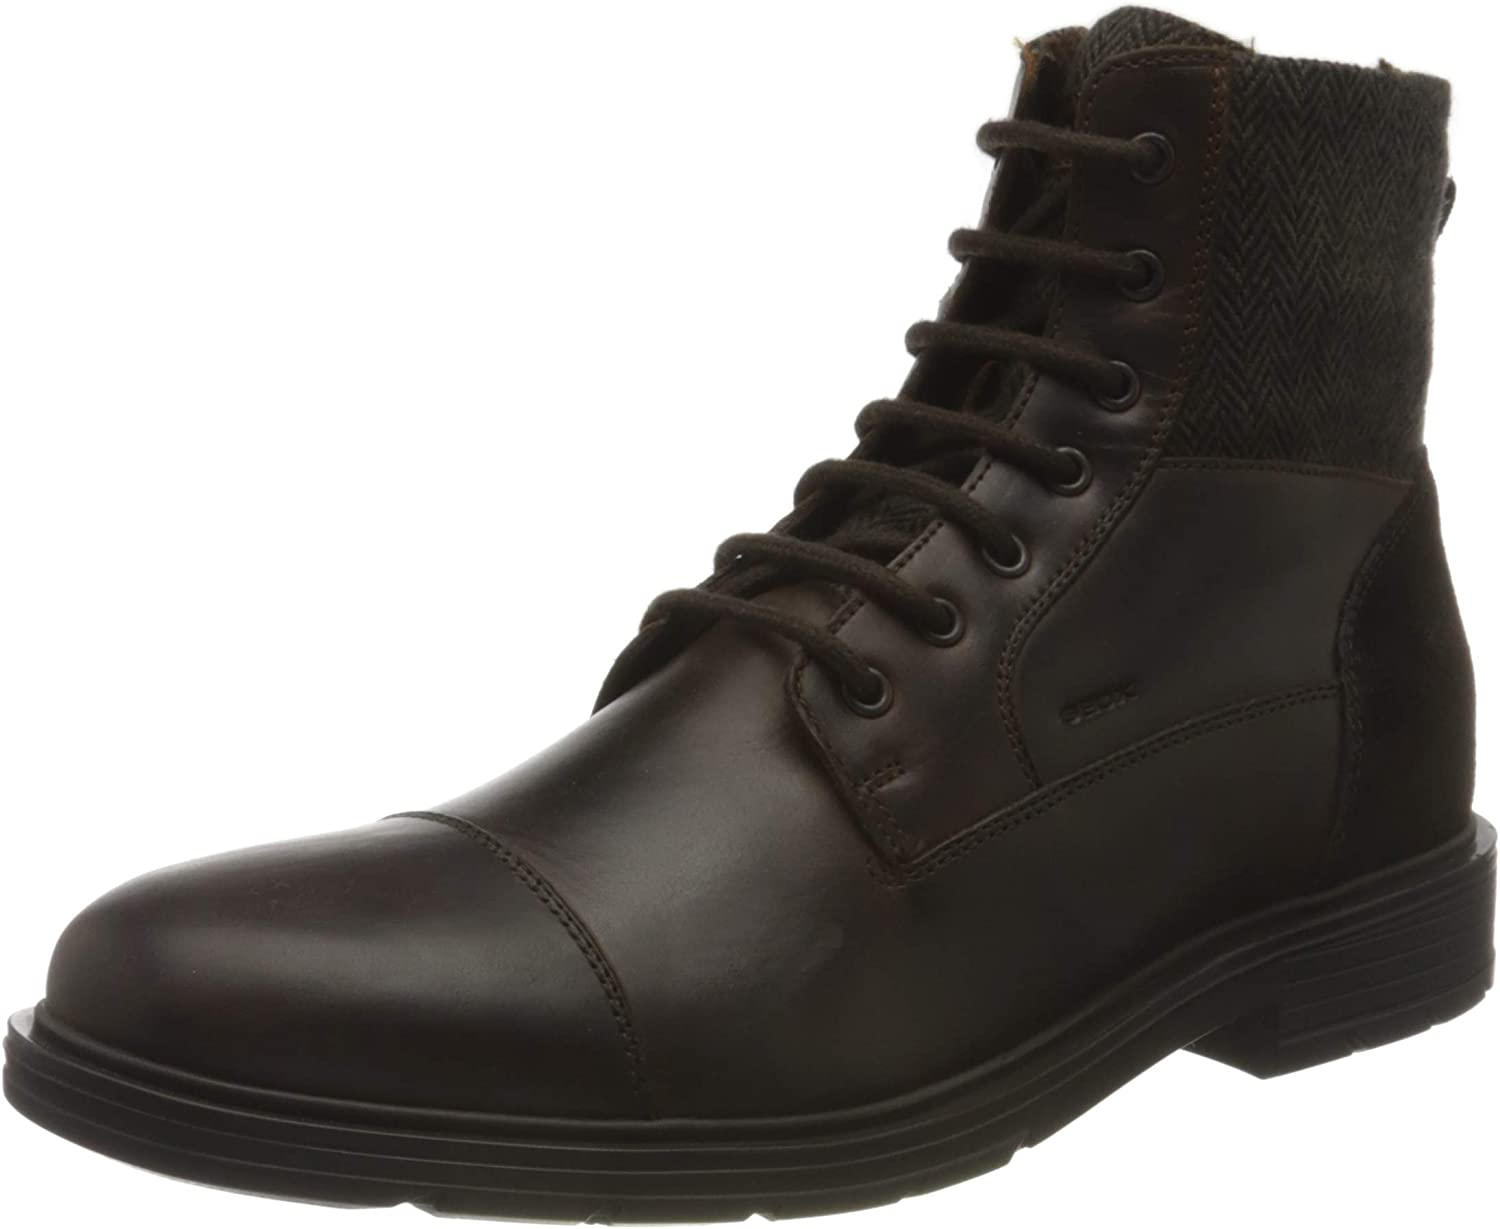 Geox Men's Classic Cheap mail order shopping Ankle Now on sale Boots